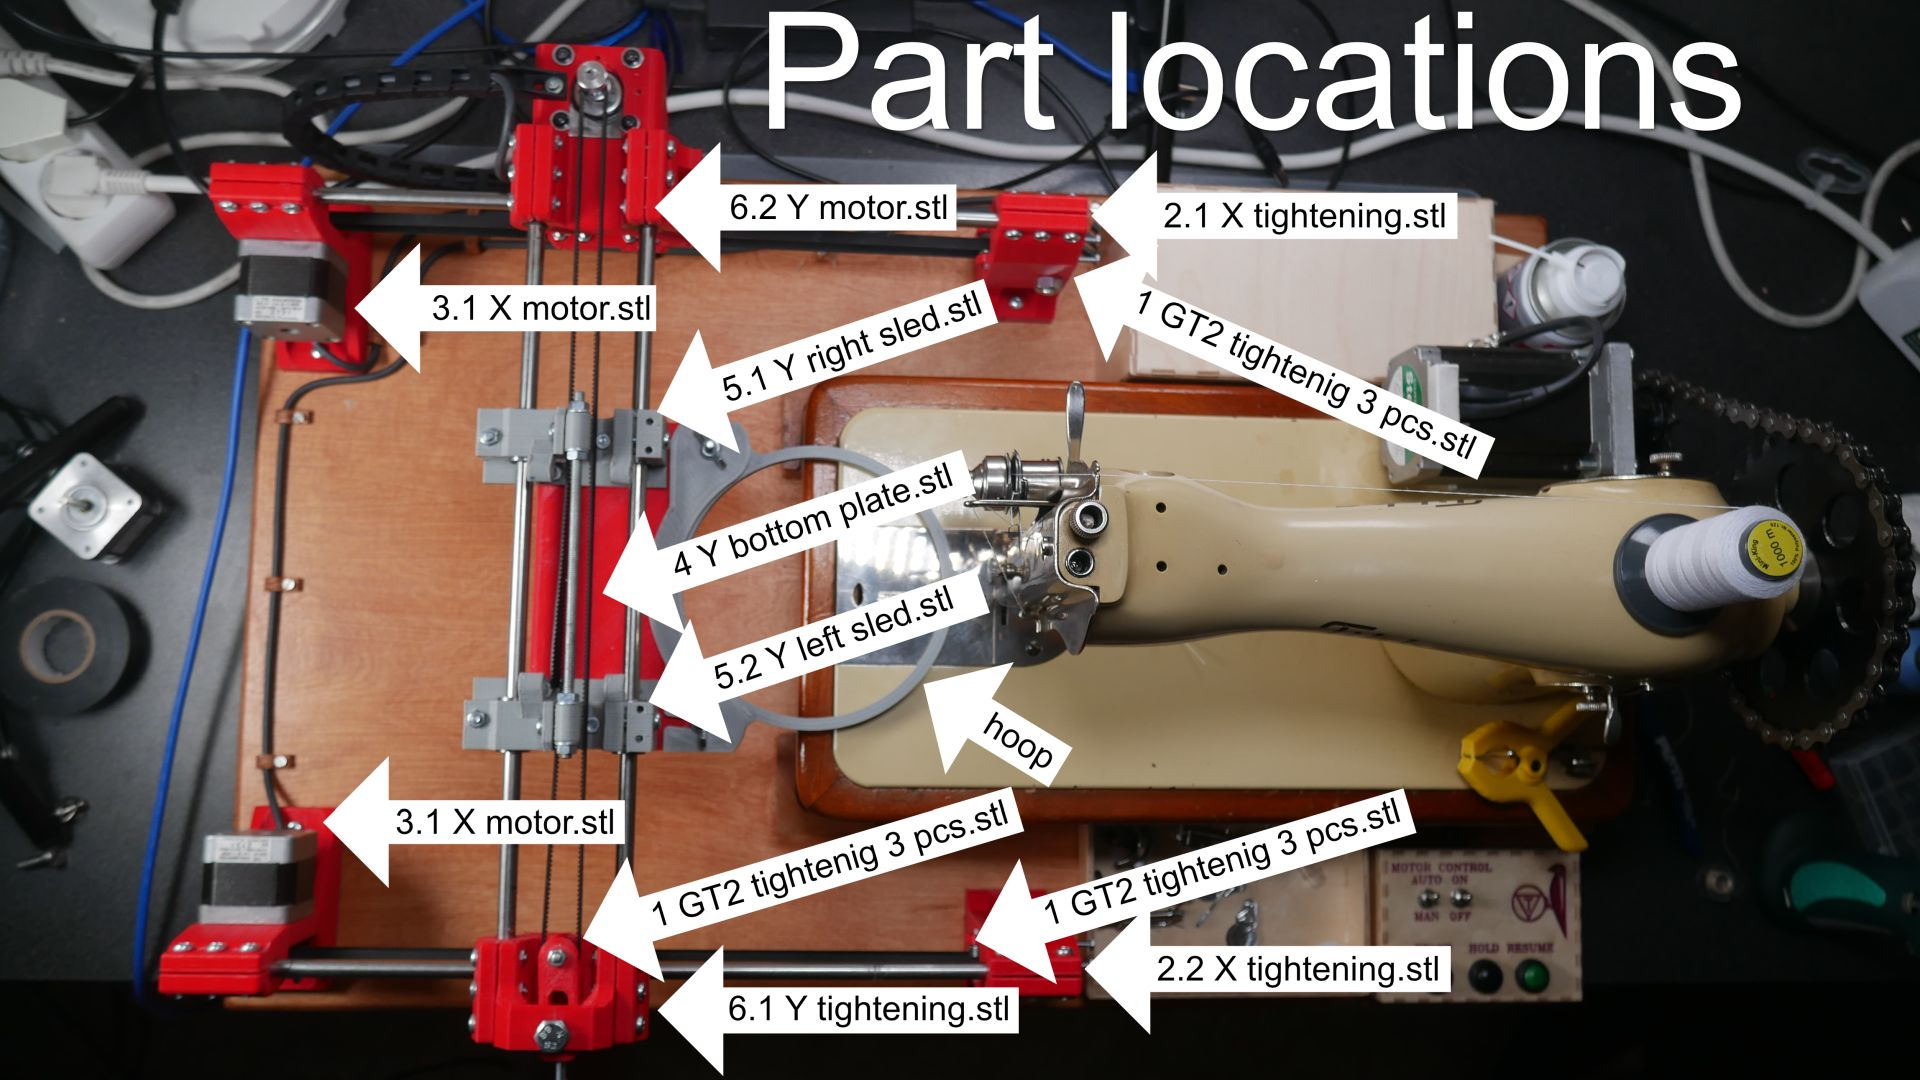 3D pritned parts location